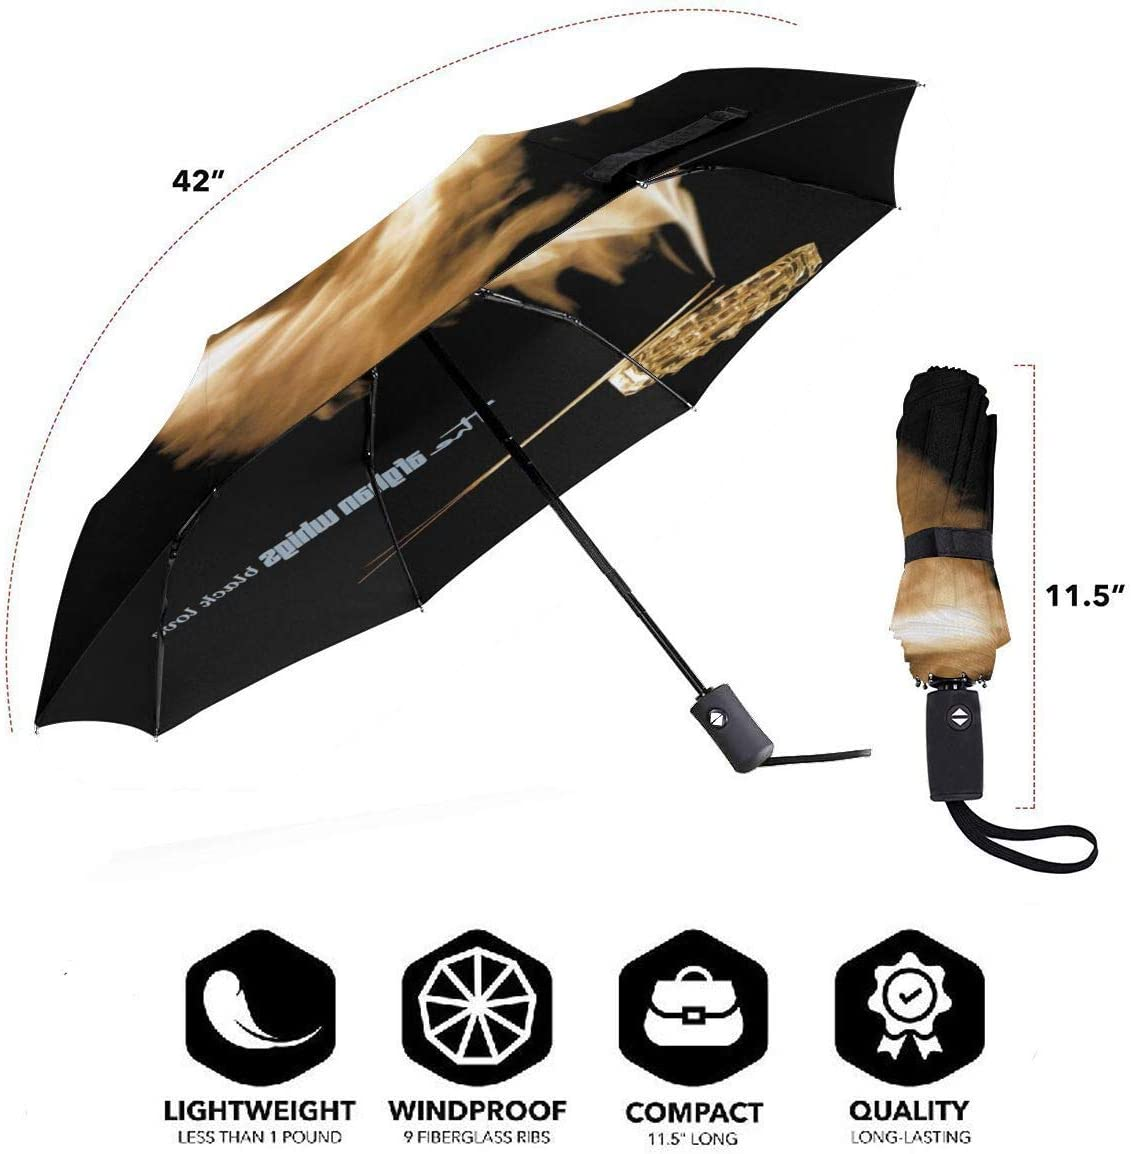 The Afghan Whigs Sun Protection Umbrella,Waterproof Travel Automatic Tri-fold Umbrellas